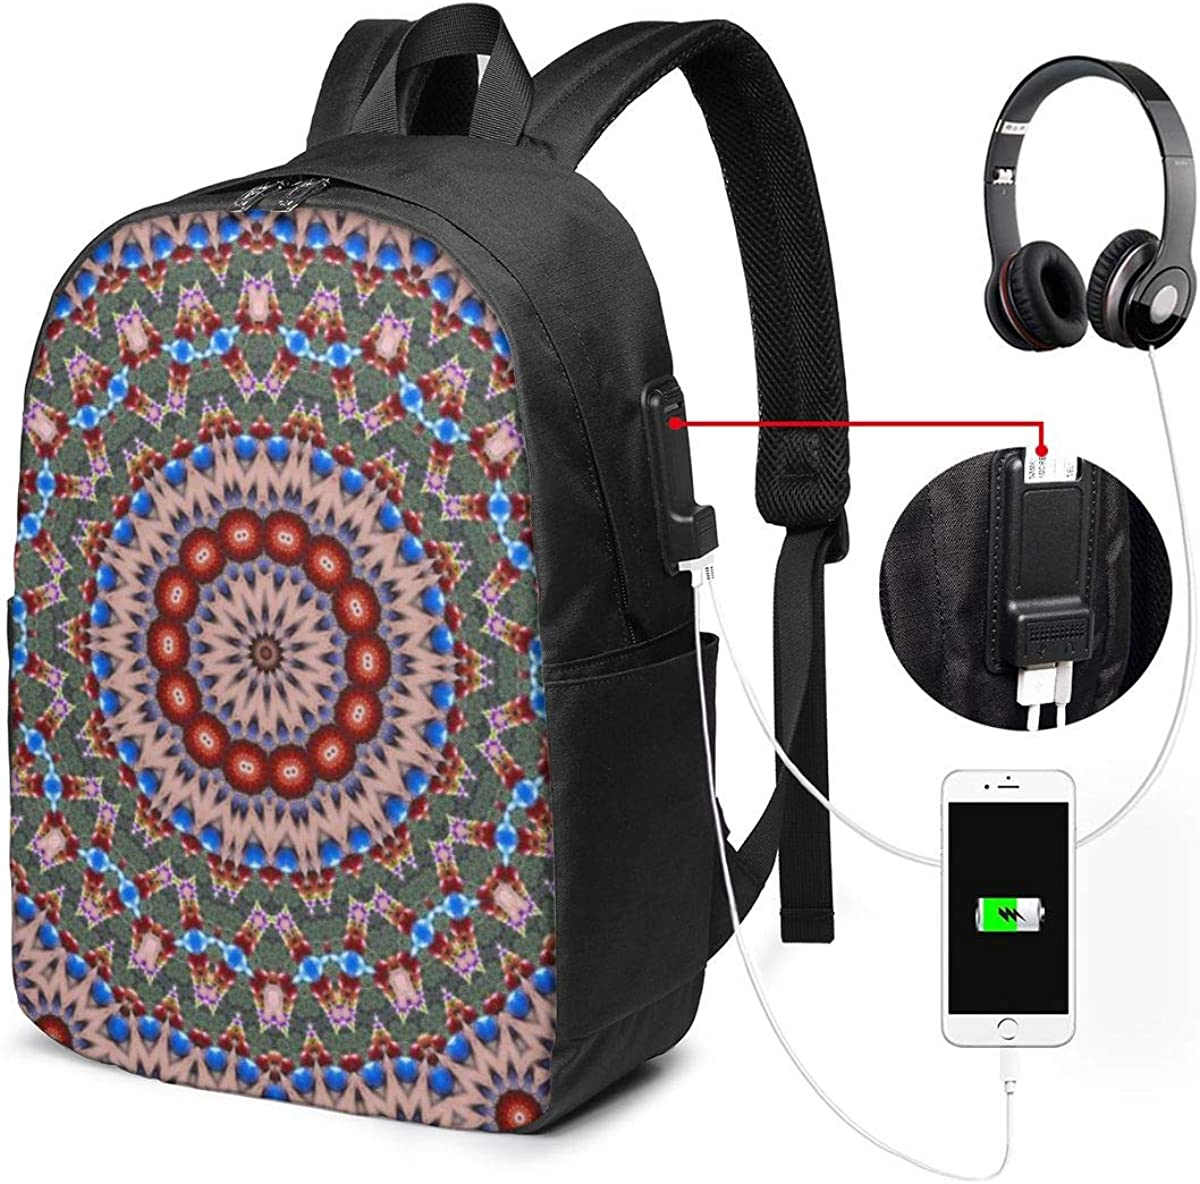 Durable Laptop Backpack 17 Inch Travel Backpack Bookbag With Usb Charging Port For Women /& Men Fits Laptop And Notebook,Abstract Colorful Background Pattern